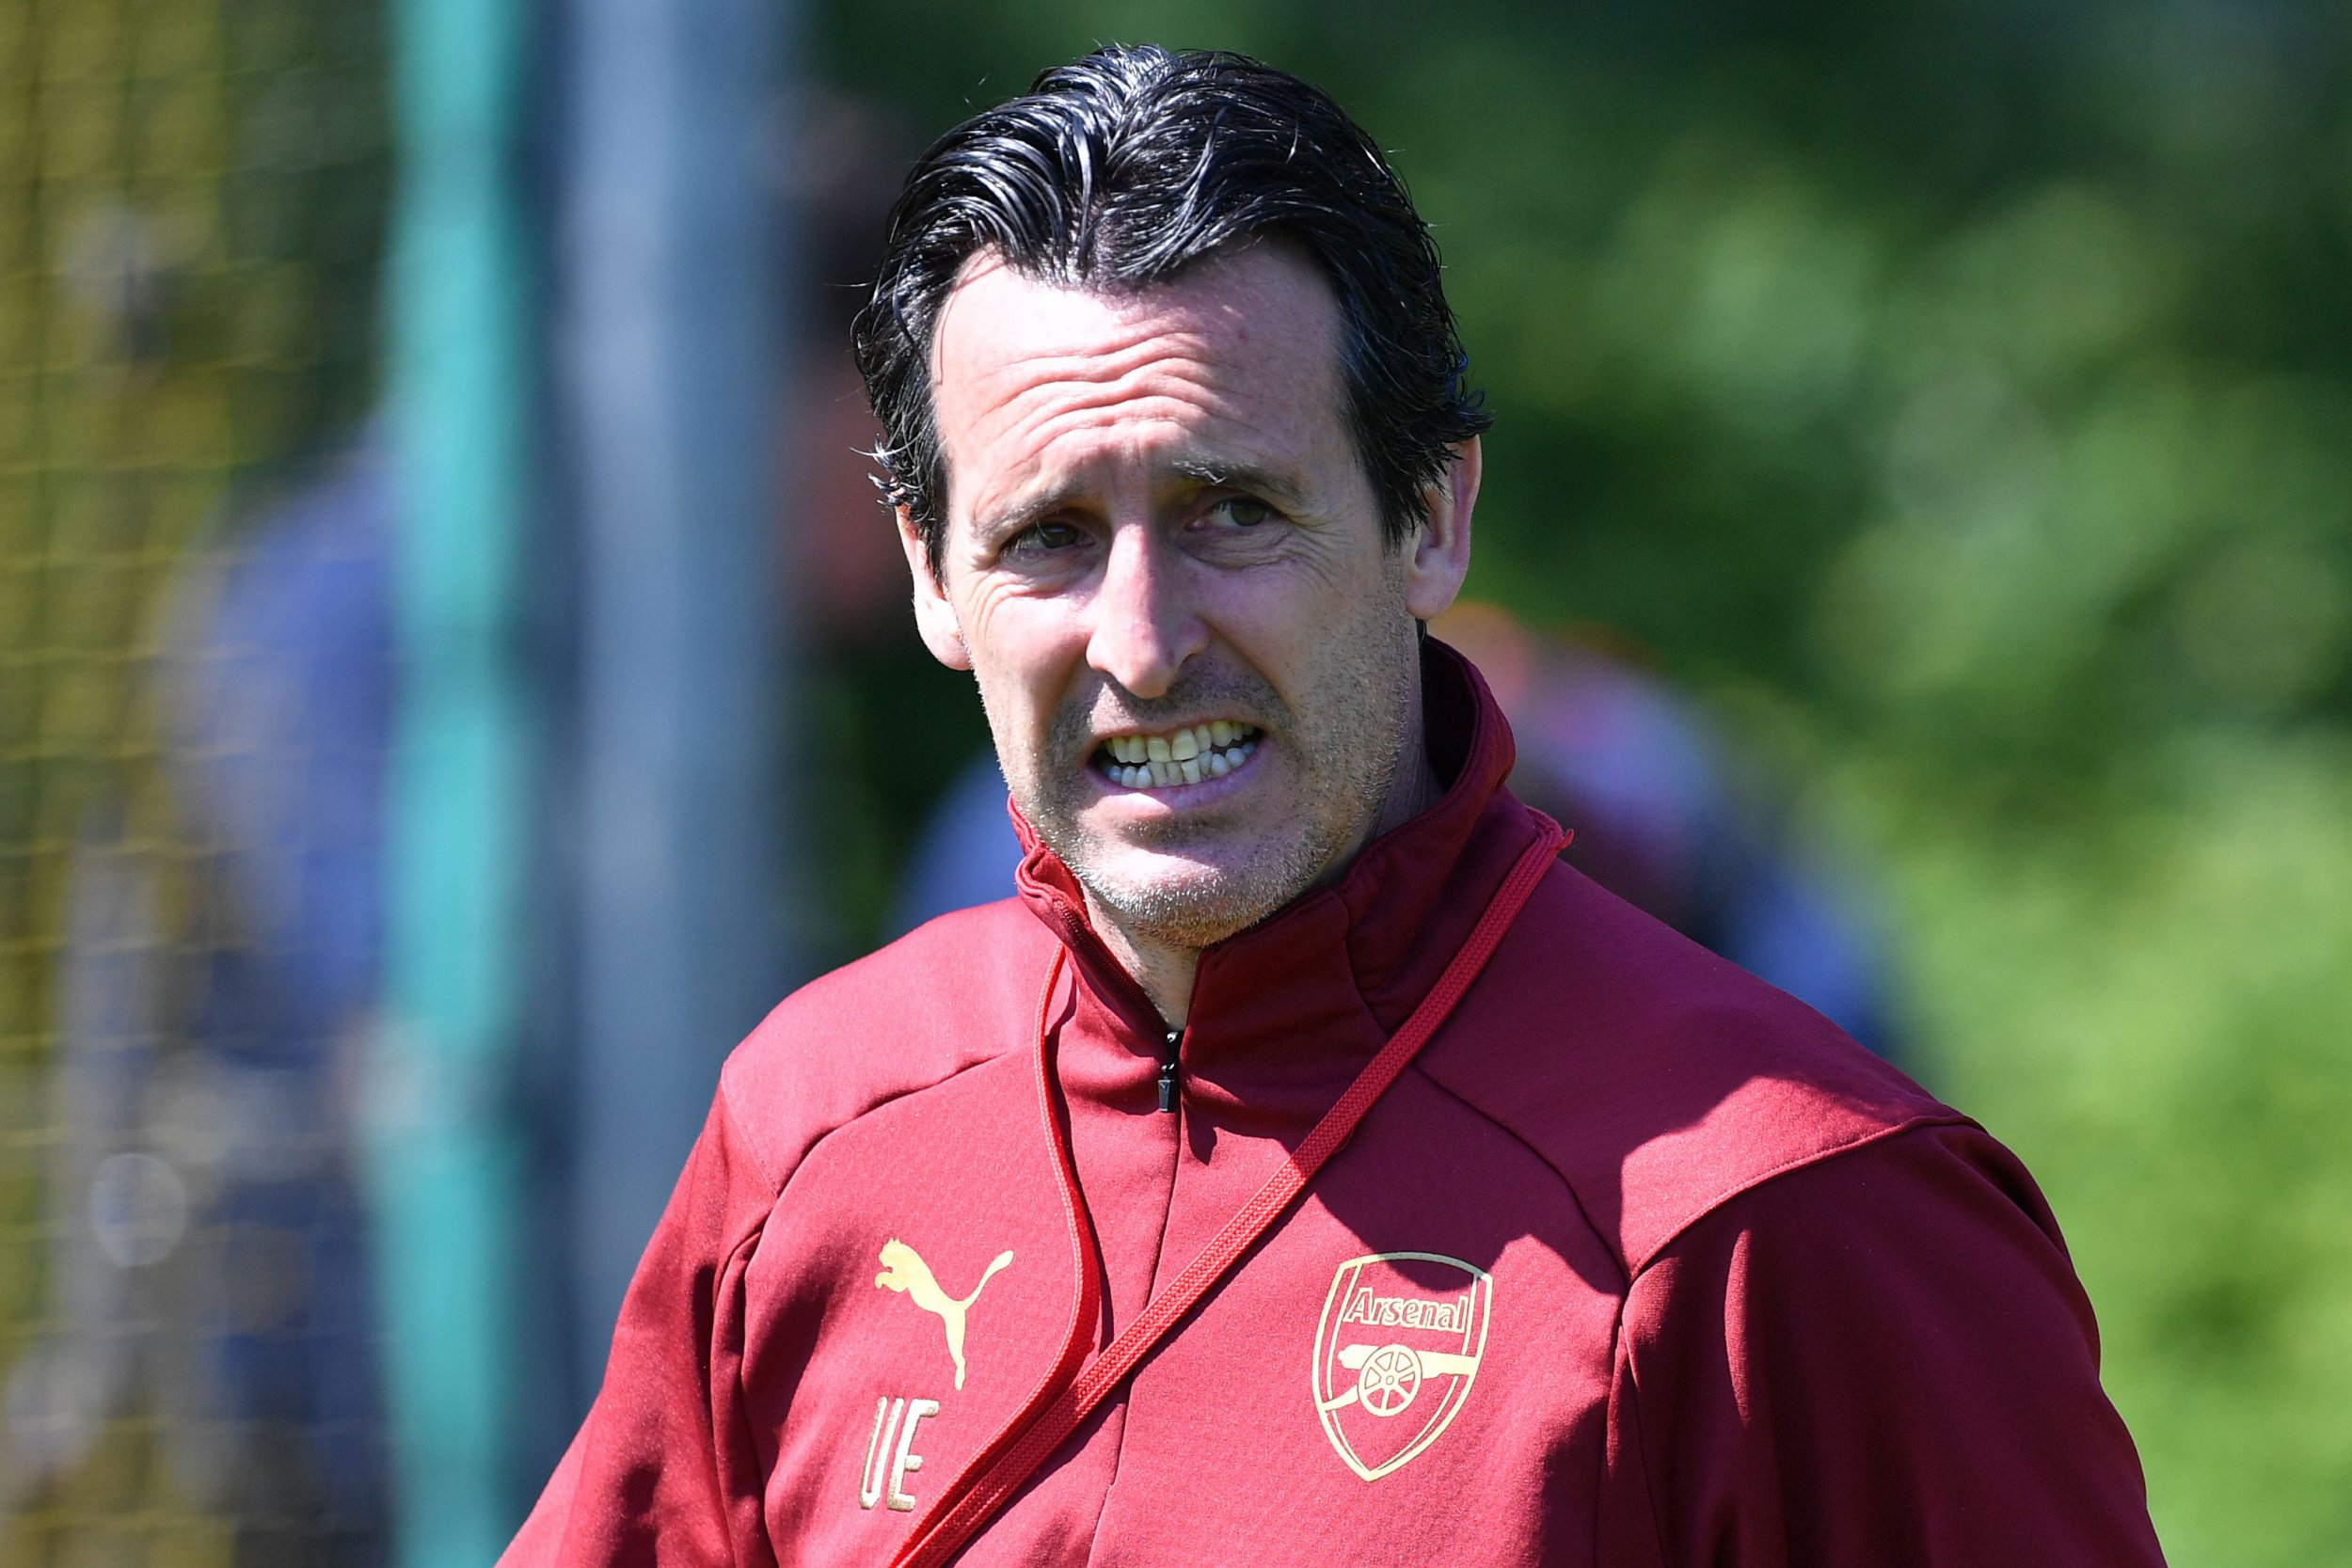 Unai Emery 'respects' Henrikh Mkhitaryan's decision to miss Arsenal's Europa League final against Chelsea over safety fears